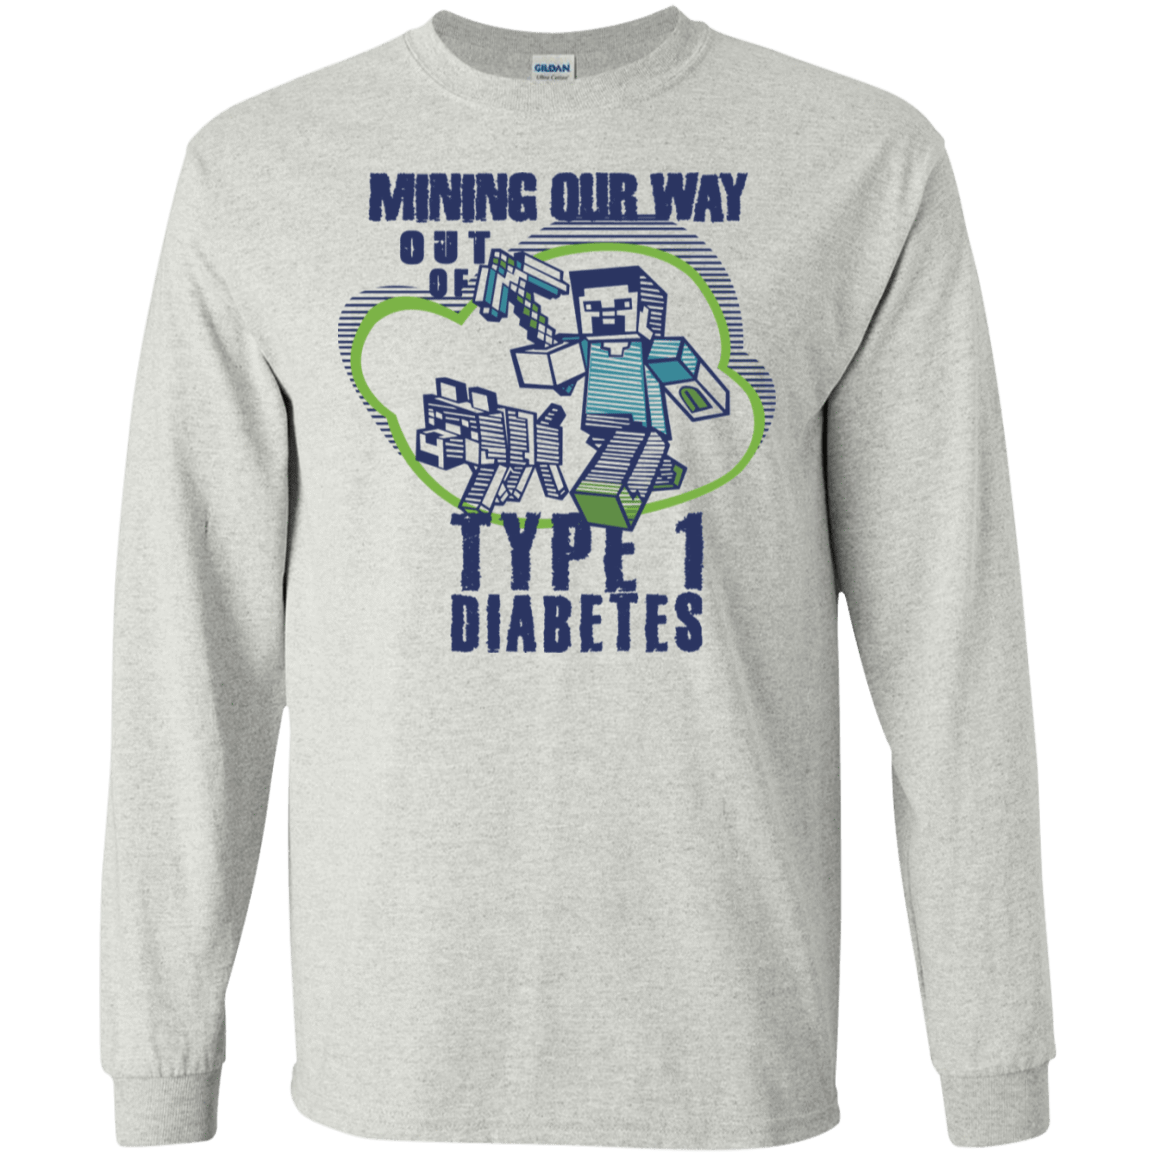 Mining Out Way Out Of Type 1 Diabetes 30-2112-72742630-10754 - Tee Ript